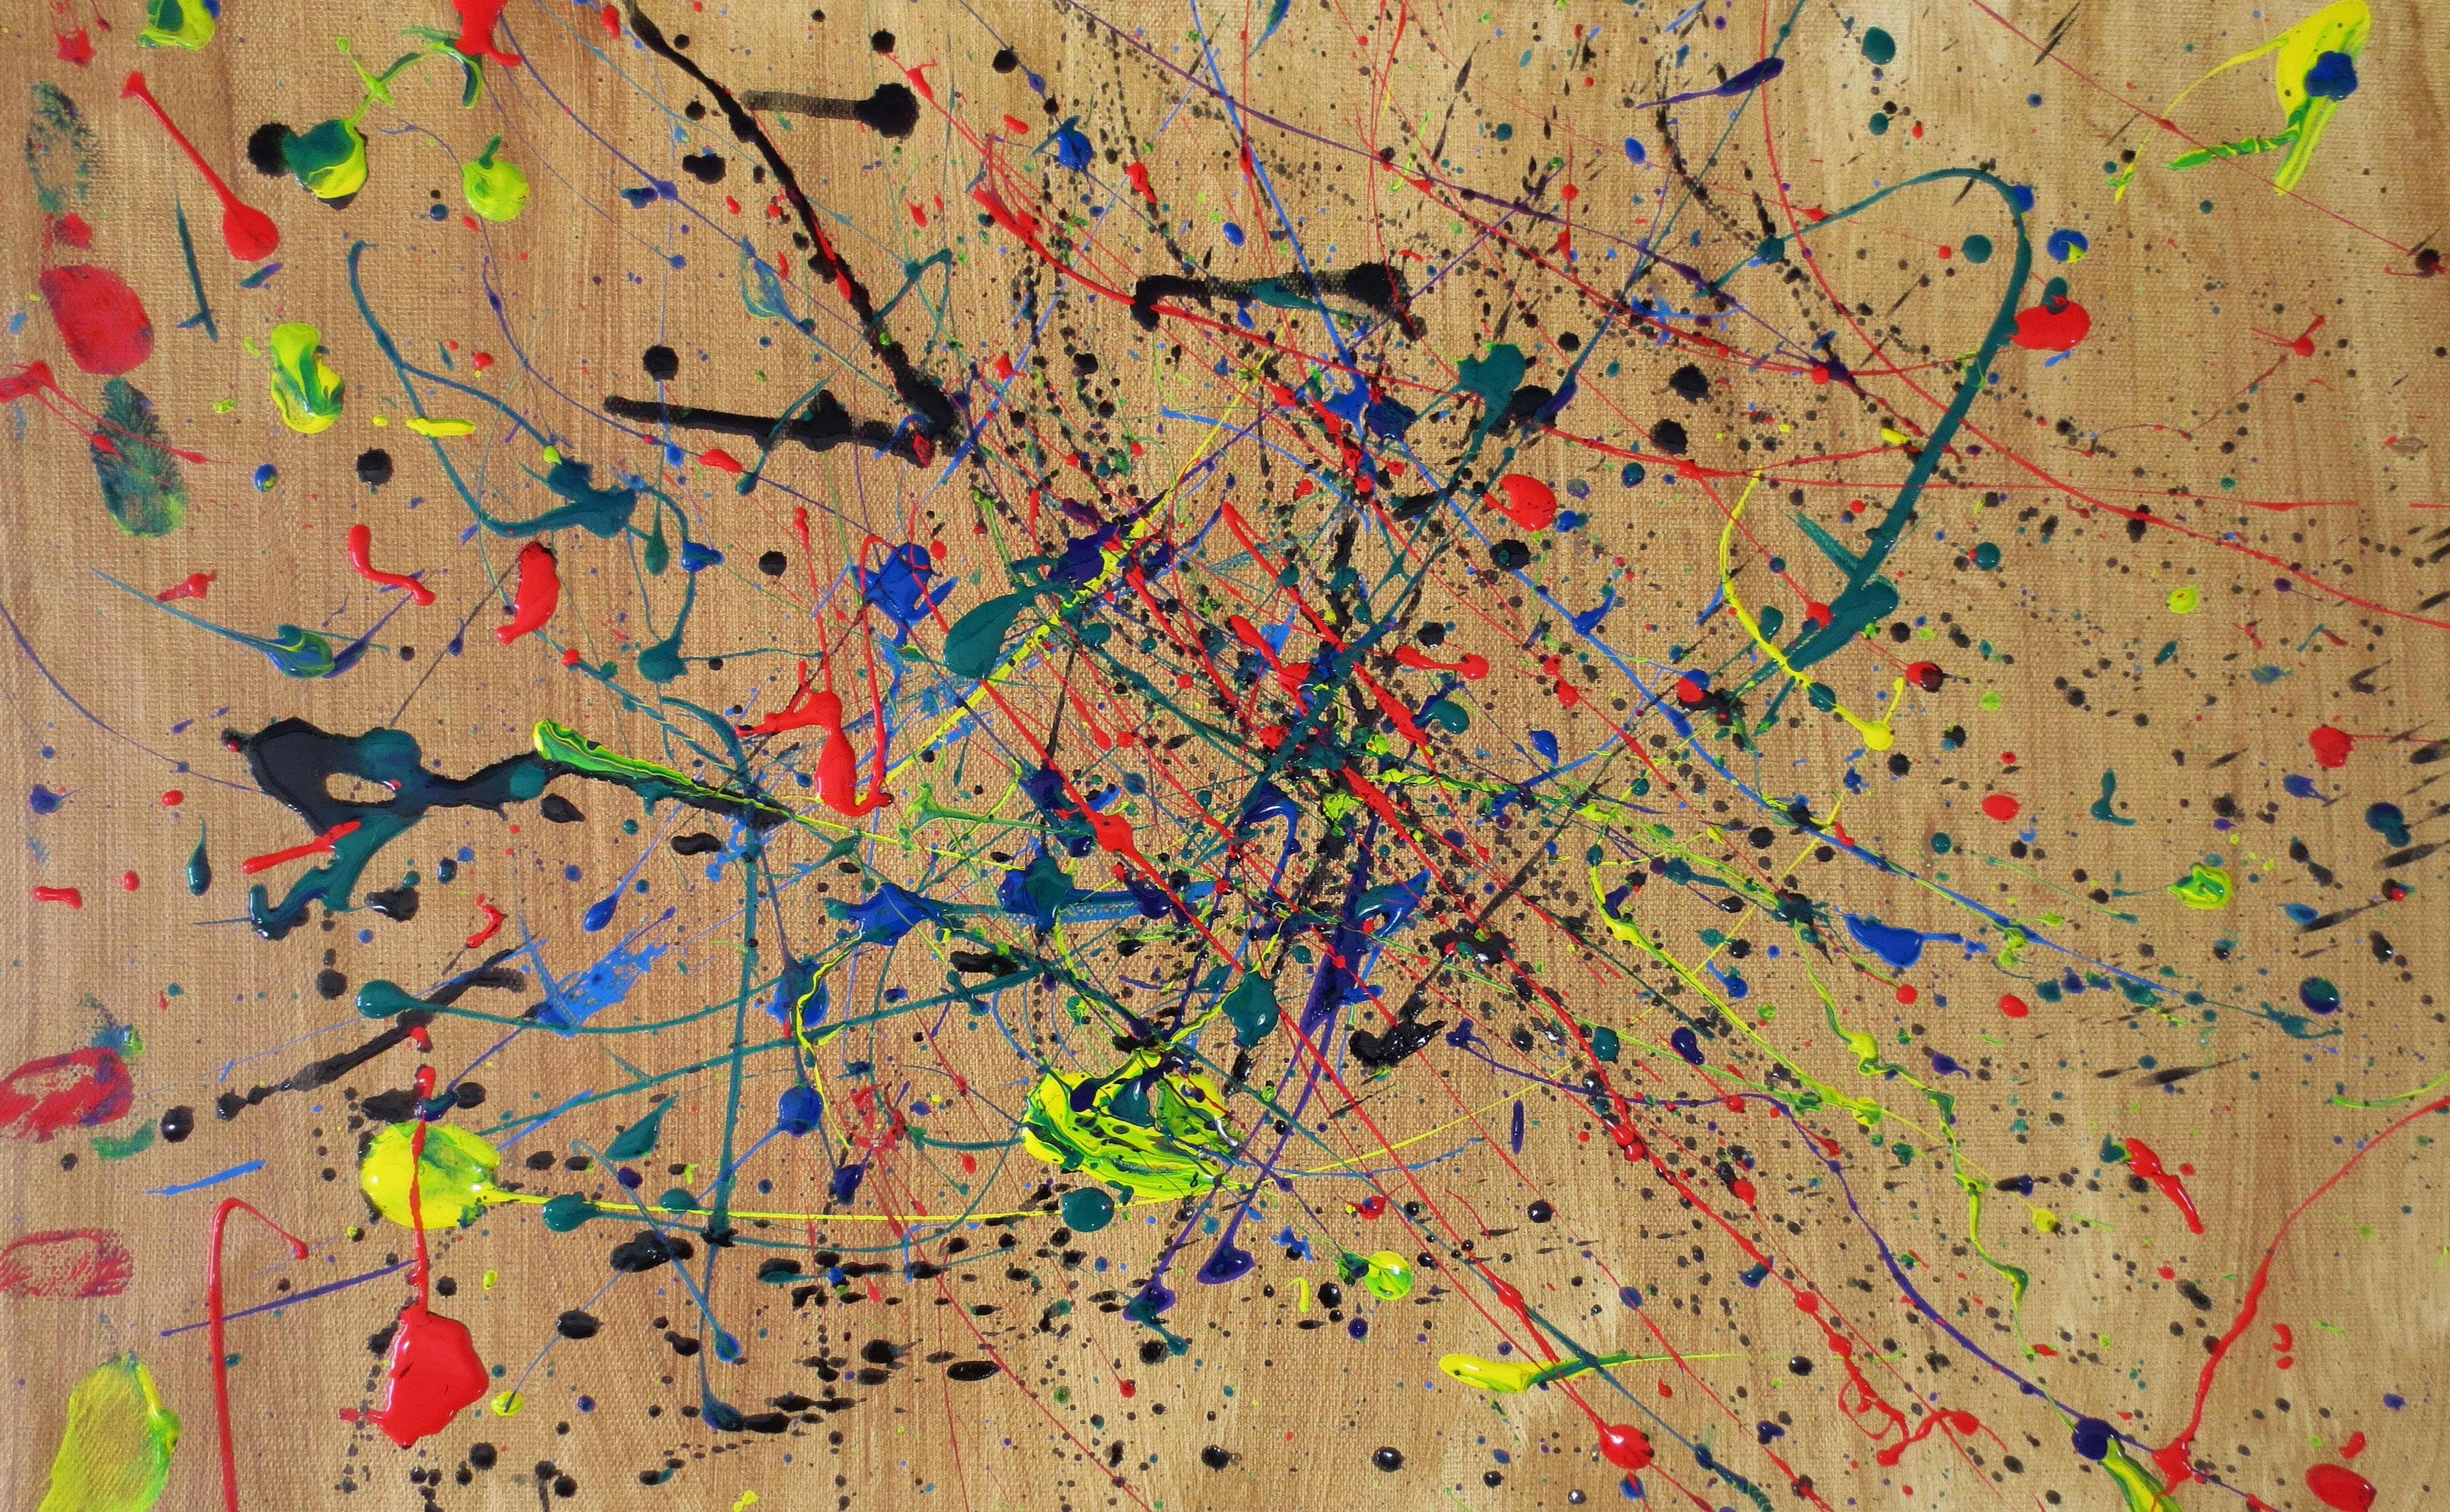 Free Download Jacksonpollock Art Background Images Android